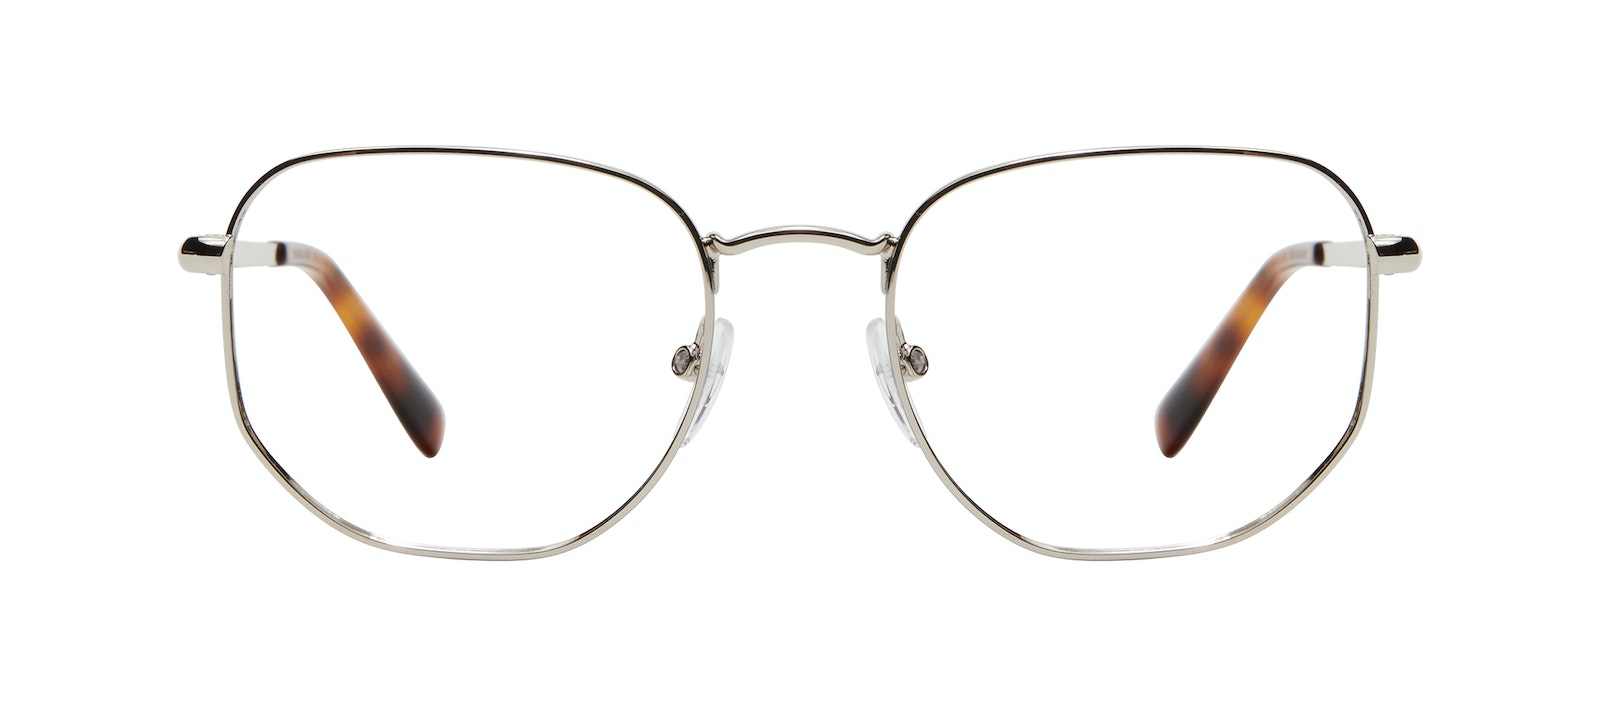 Affordable Fashion Glasses Square Eyeglasses Men Global M Silver Front